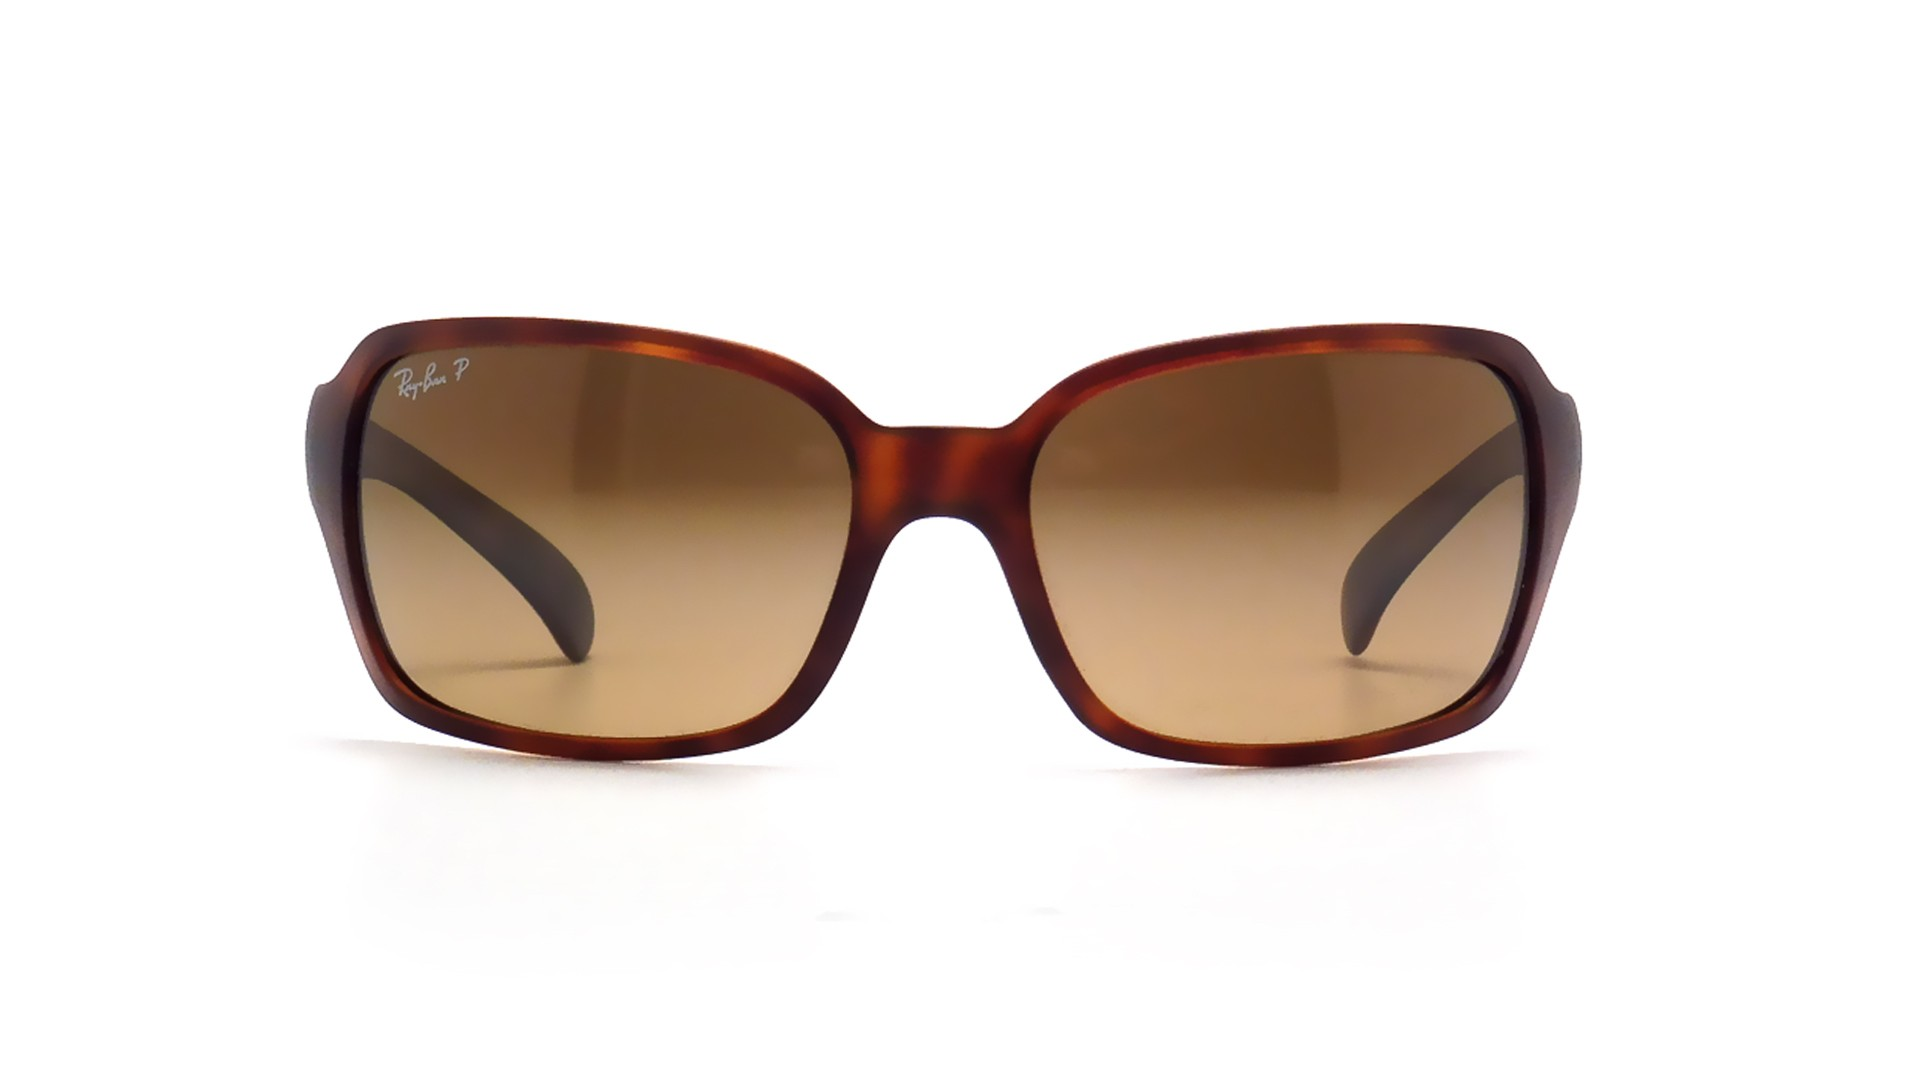 Lunettes Ray Ban Promo « Heritage Malta 52dc2fcd6d1c